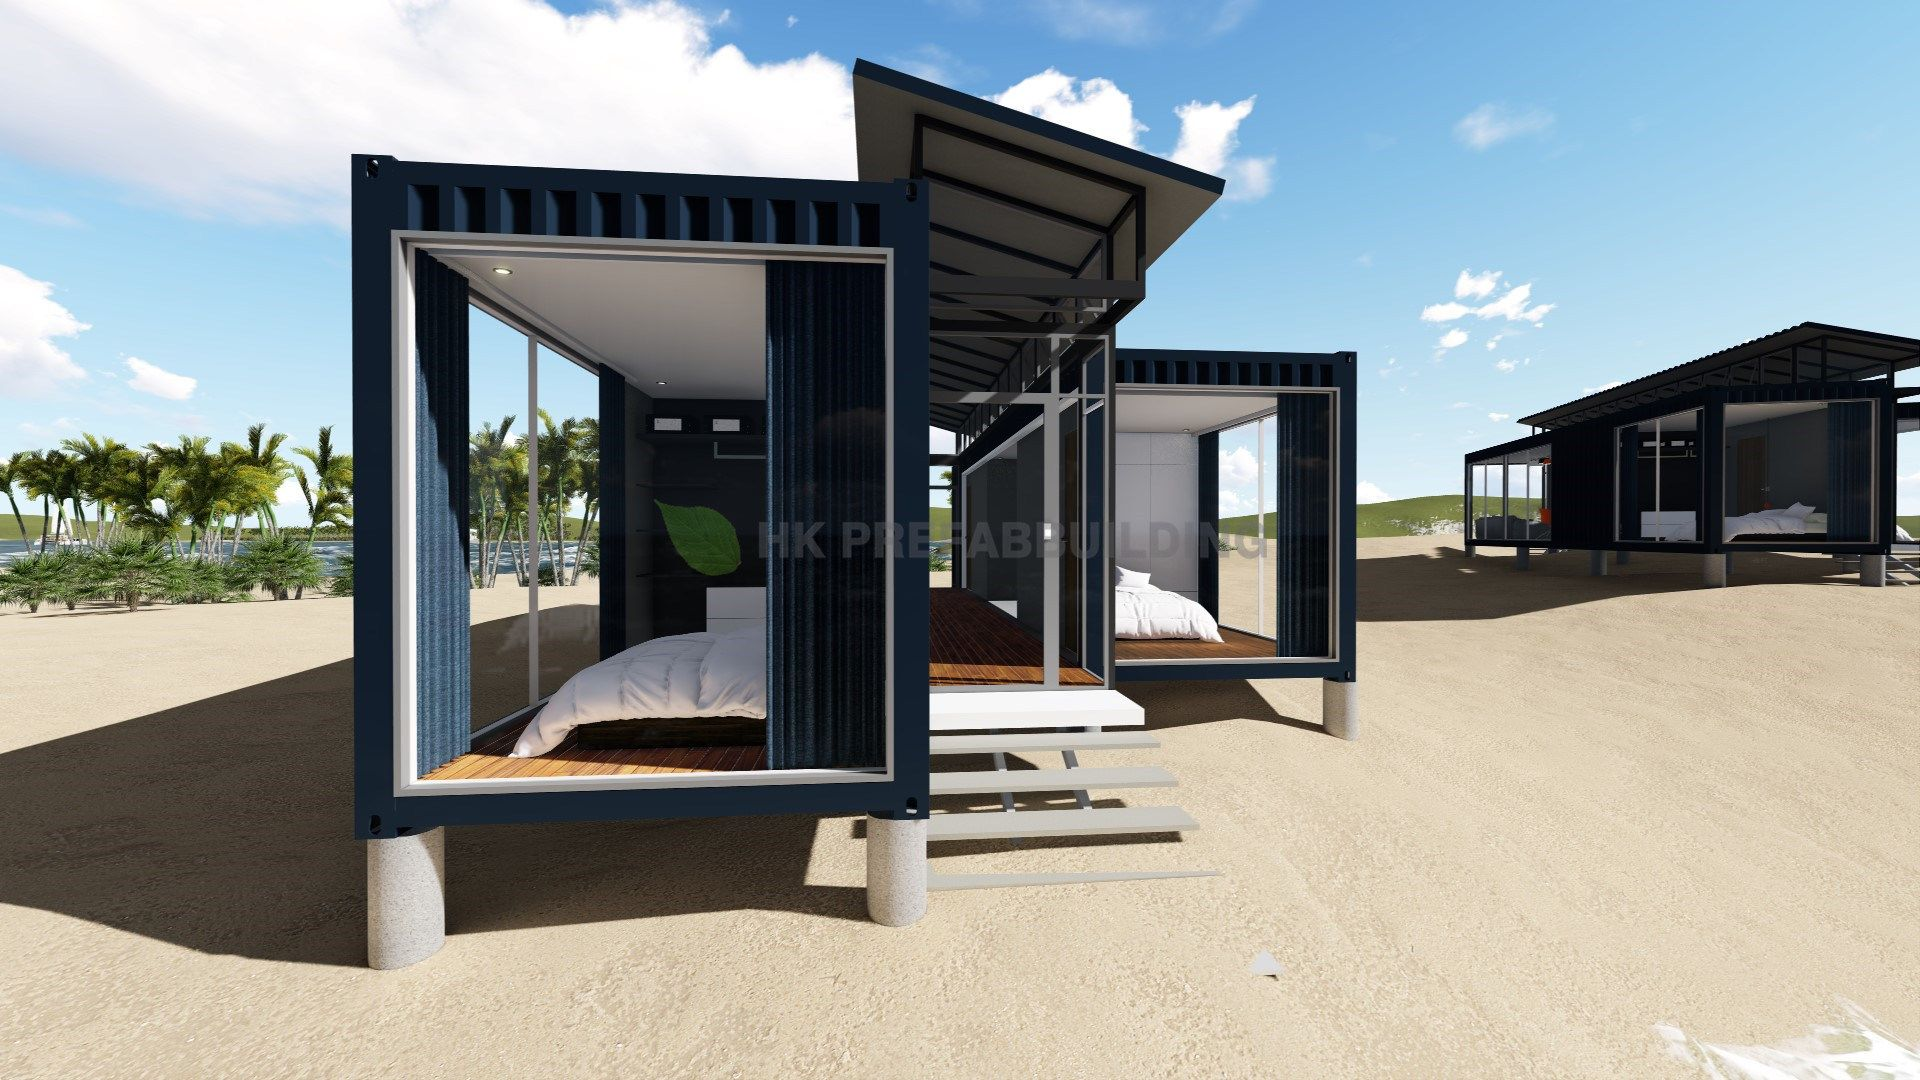 Deluxe Ocean View Modular Prefabricated 40feet Shipping Container